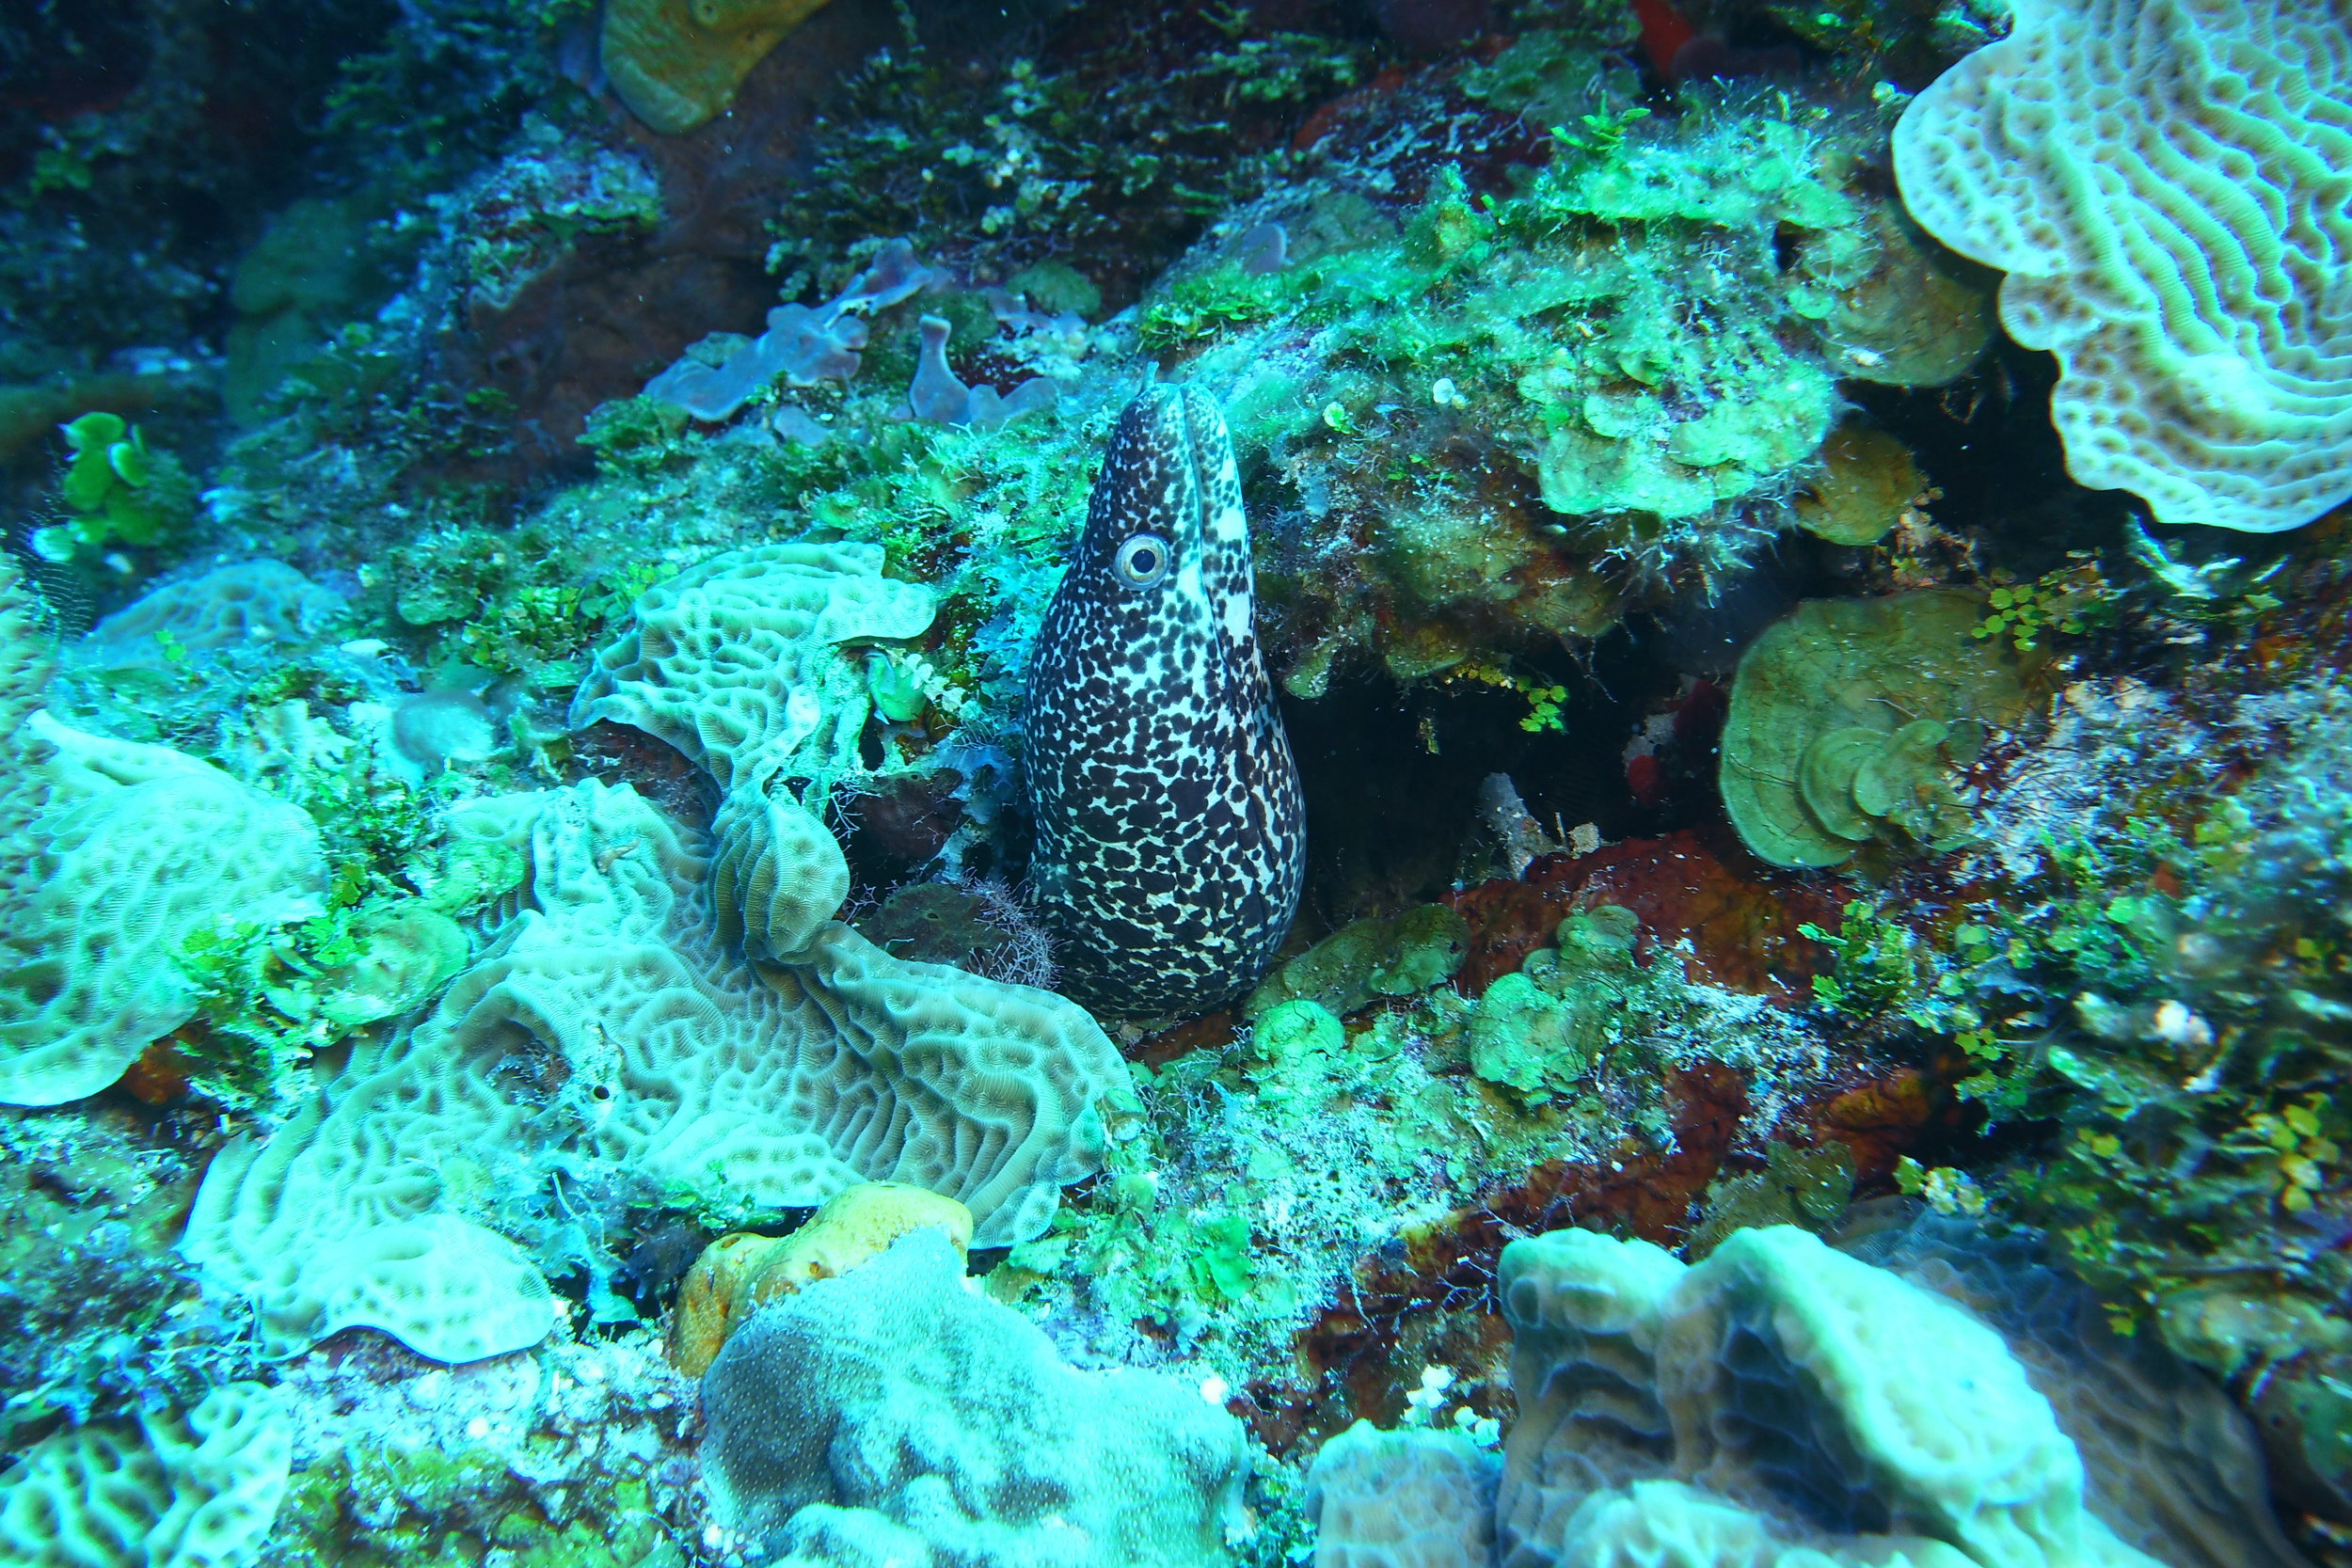 This spotted eel greeted us soon after entry